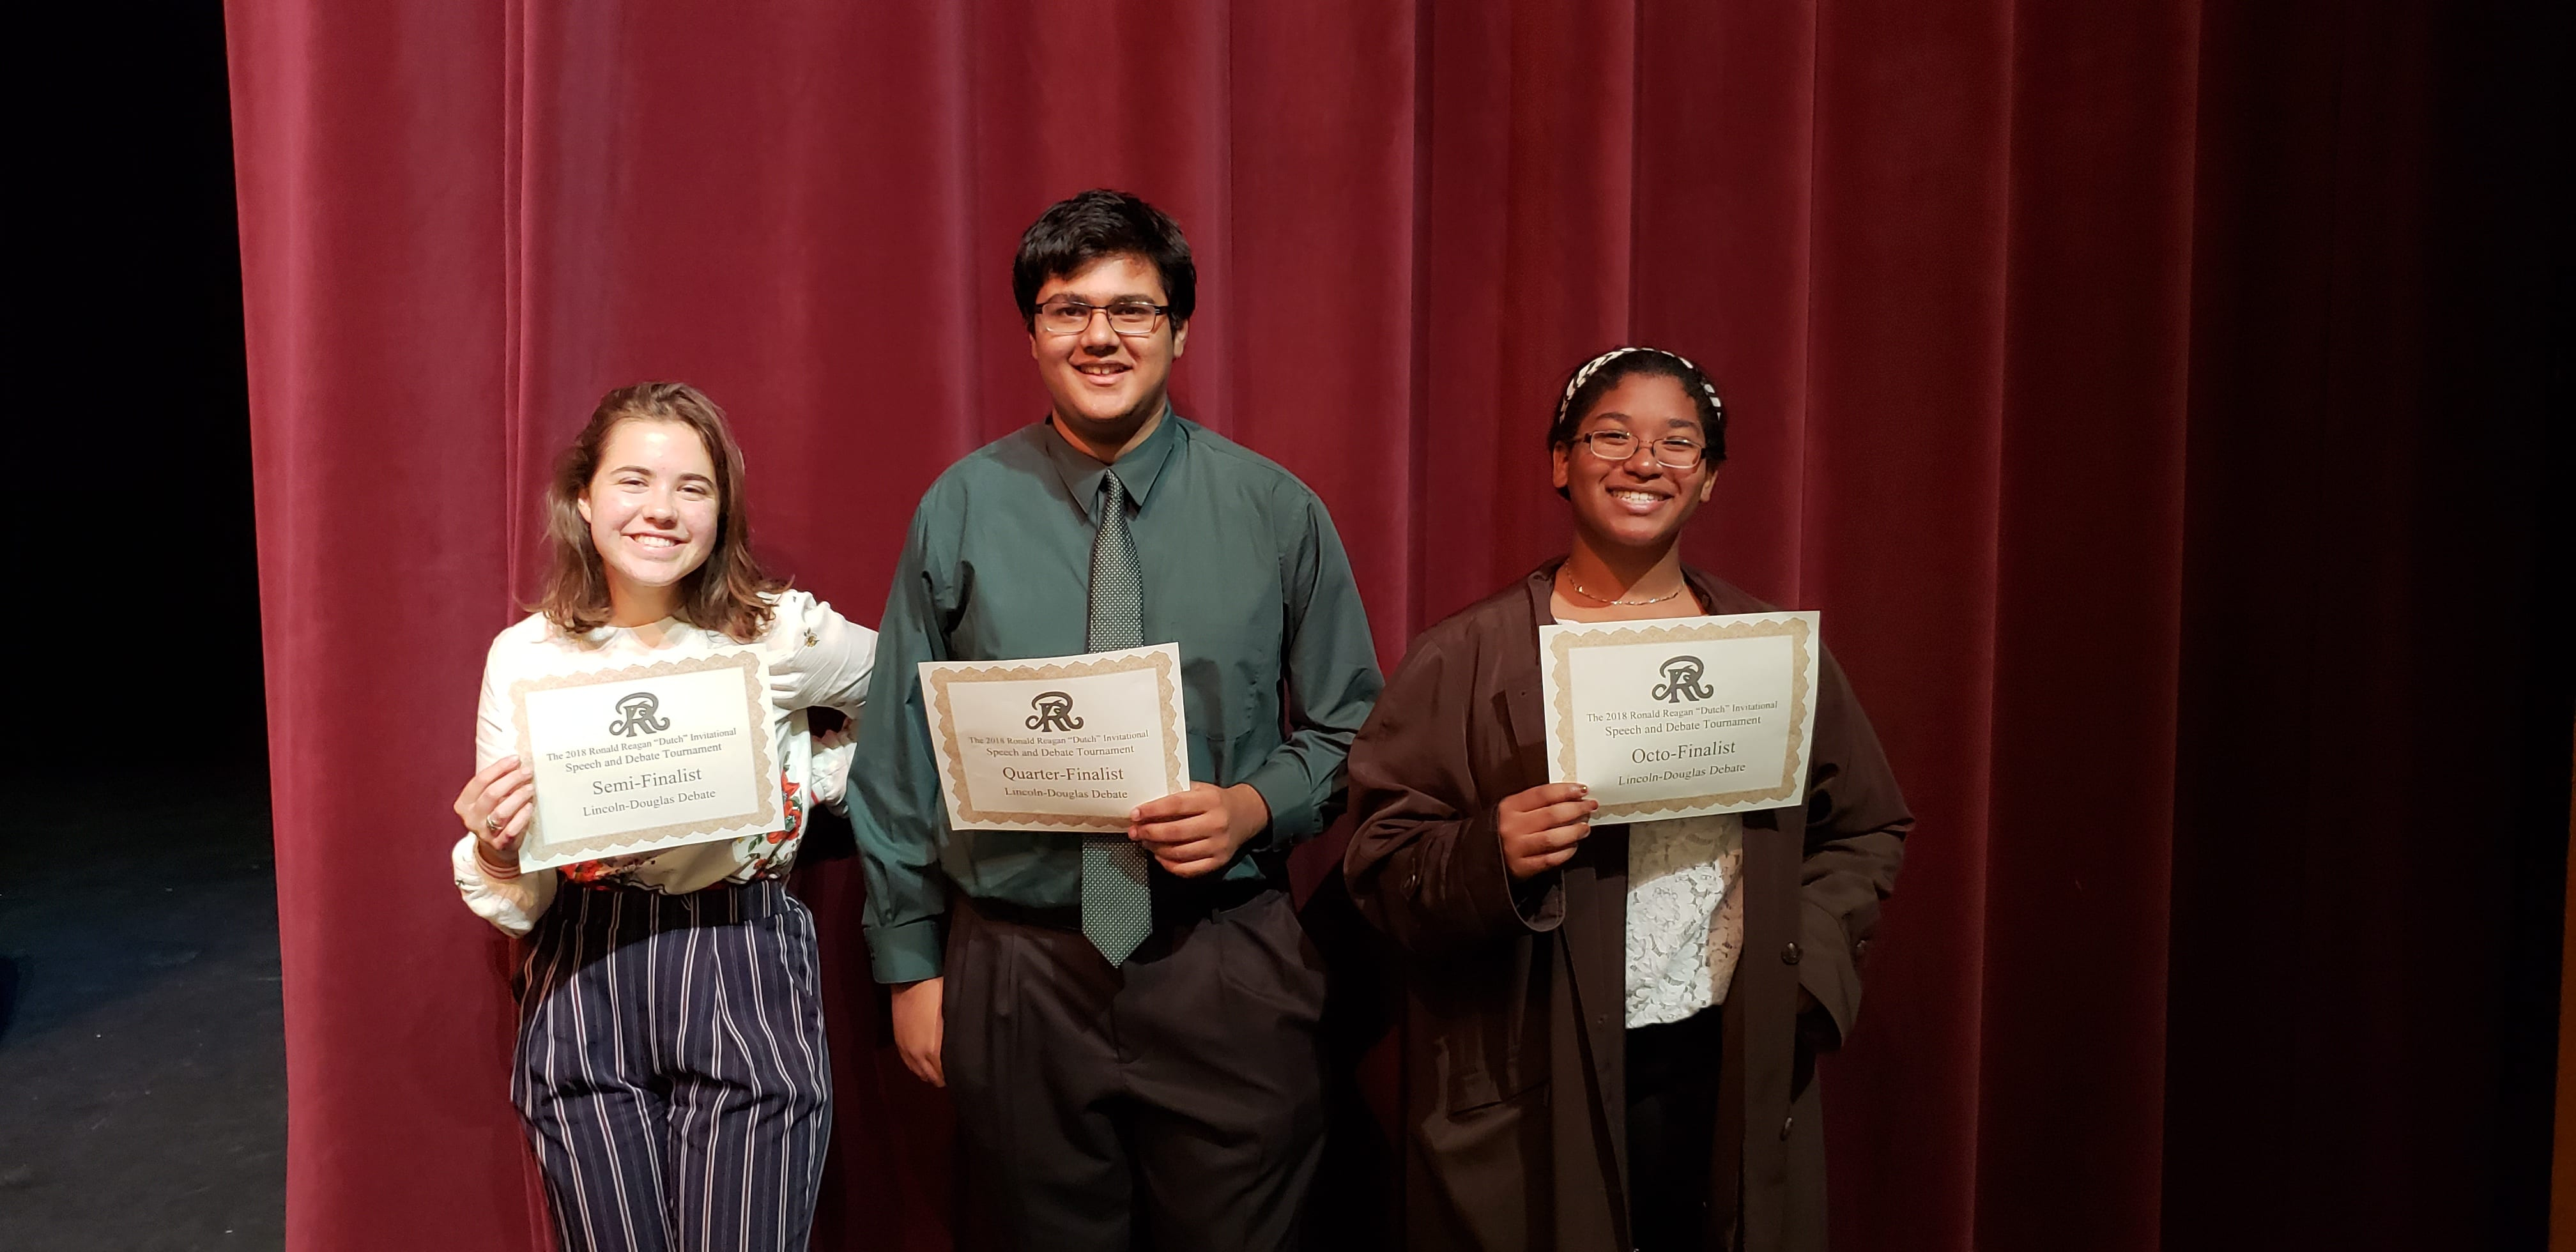 Debate success at Reagan High School